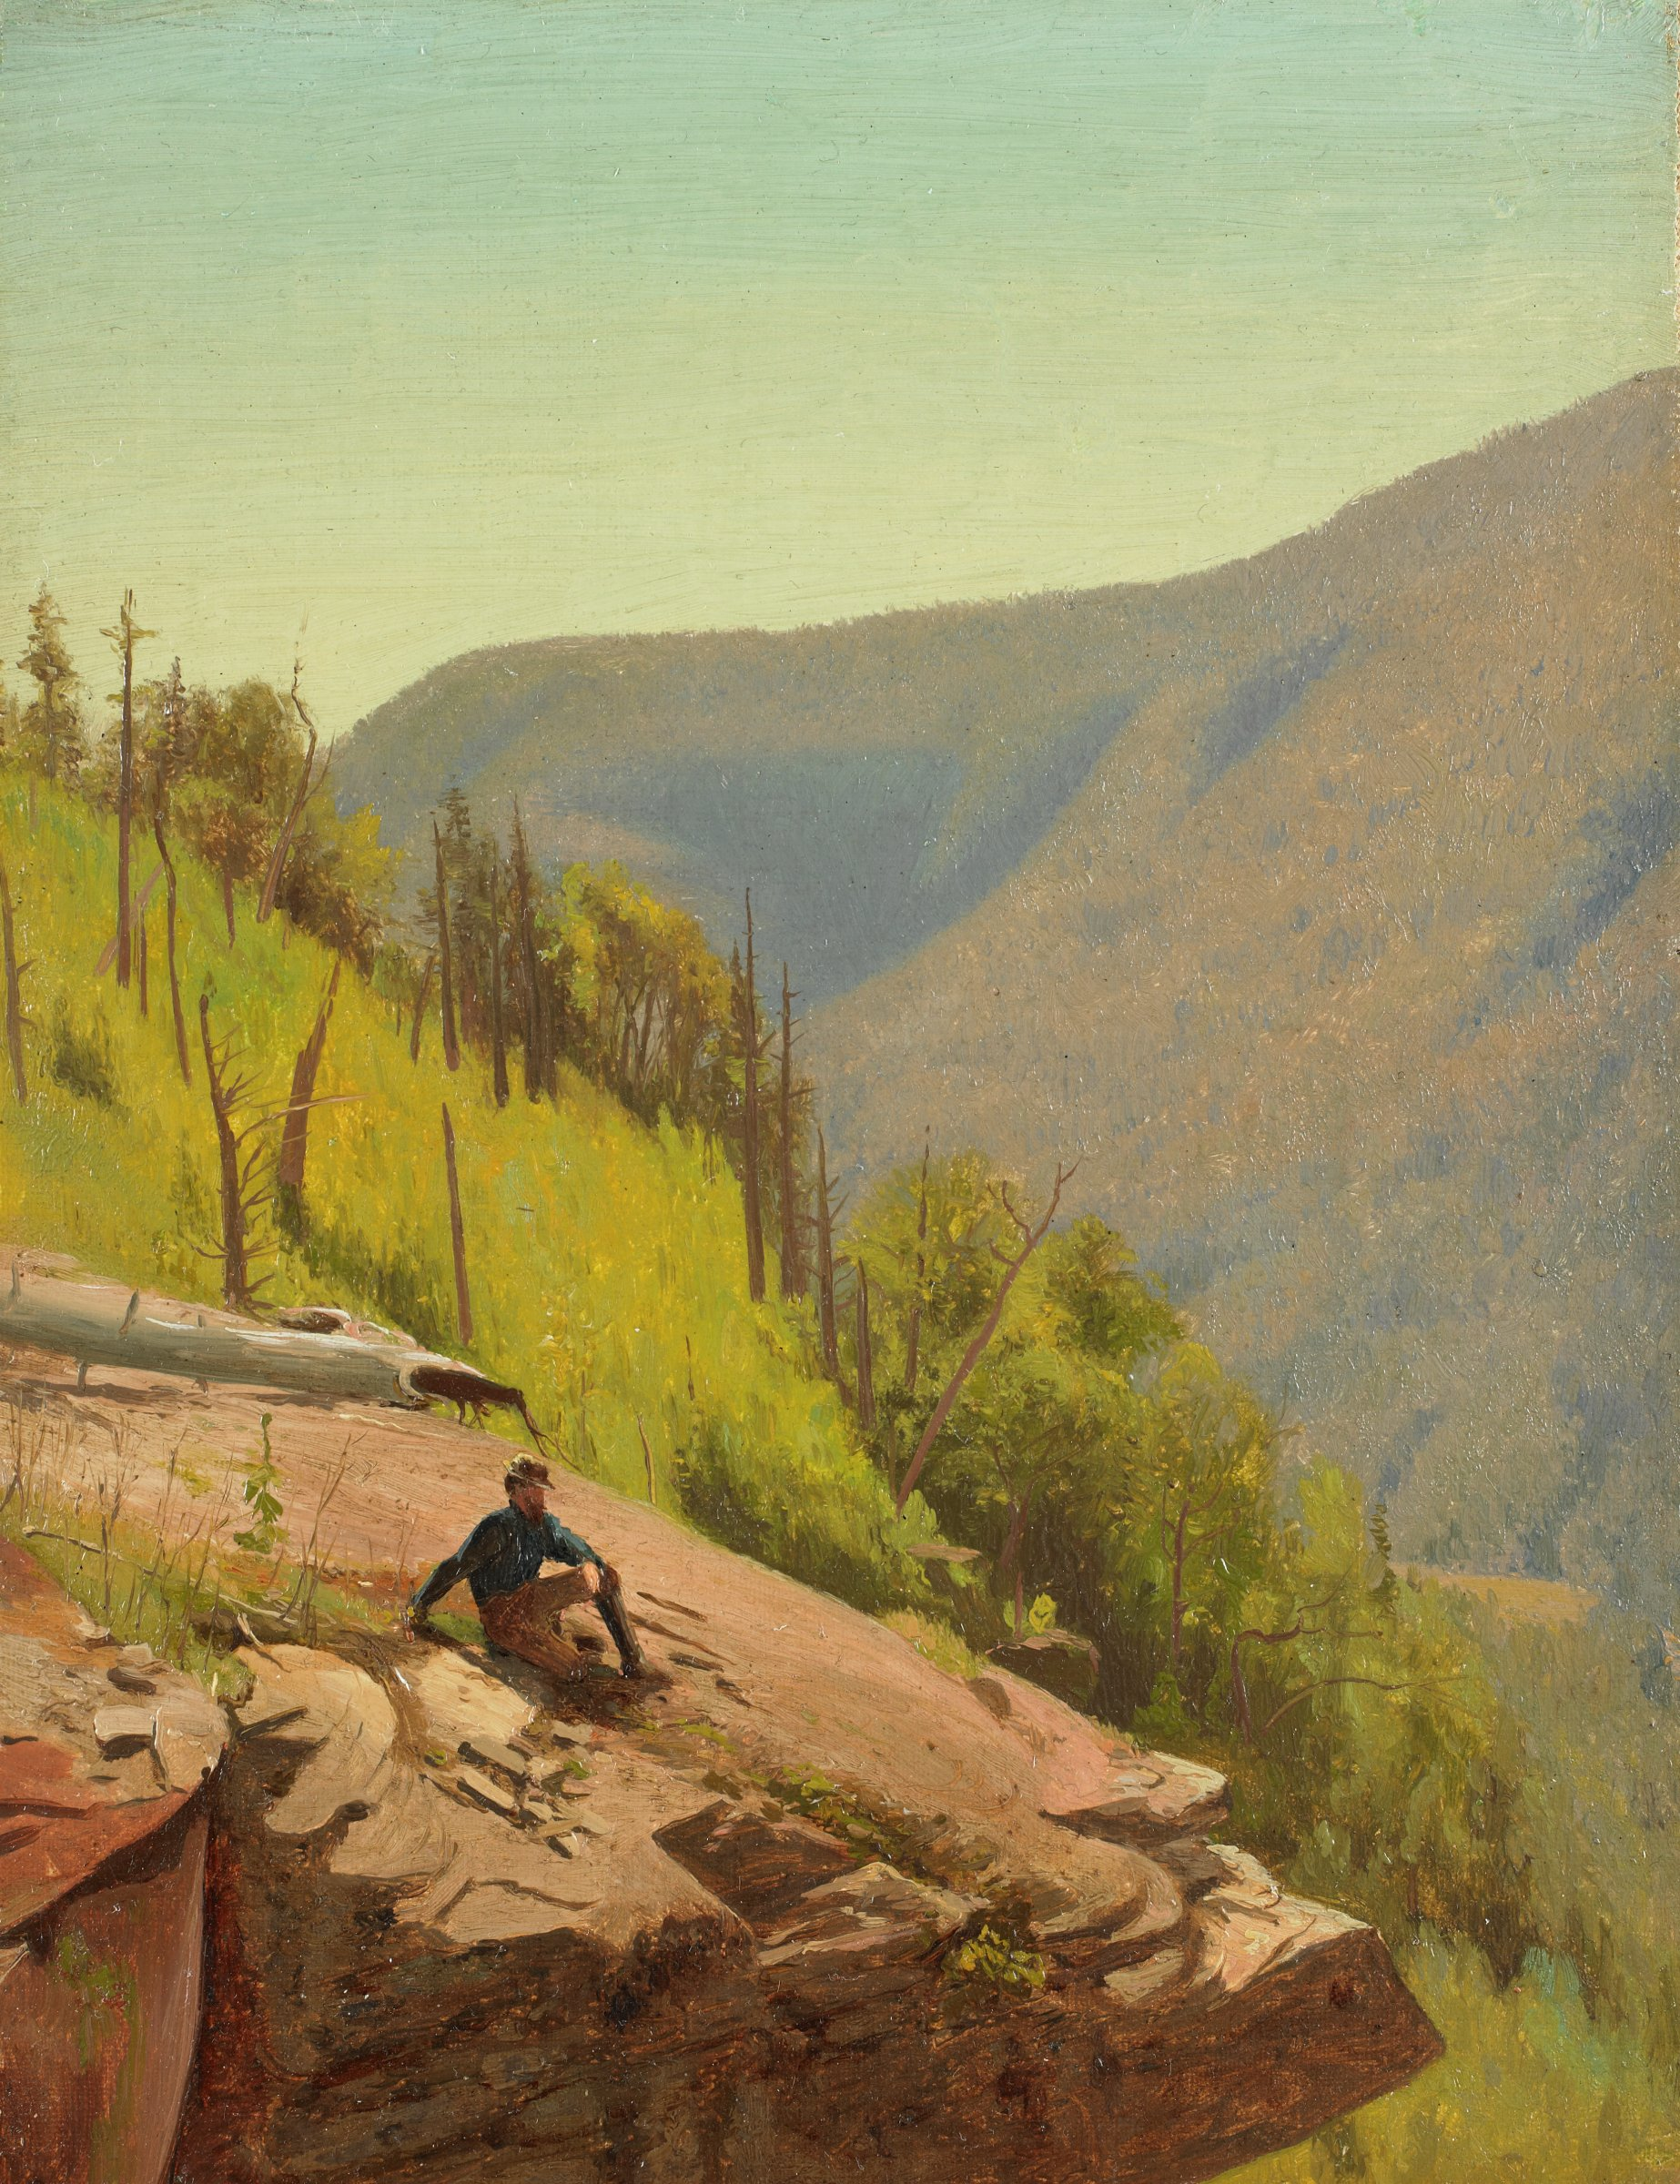 A recumbent bearded man wearing a cap, blue shirt, and tan trousers and boots rests upon a rocky outcrop, peering to the right at the surrounding wooded landscape.